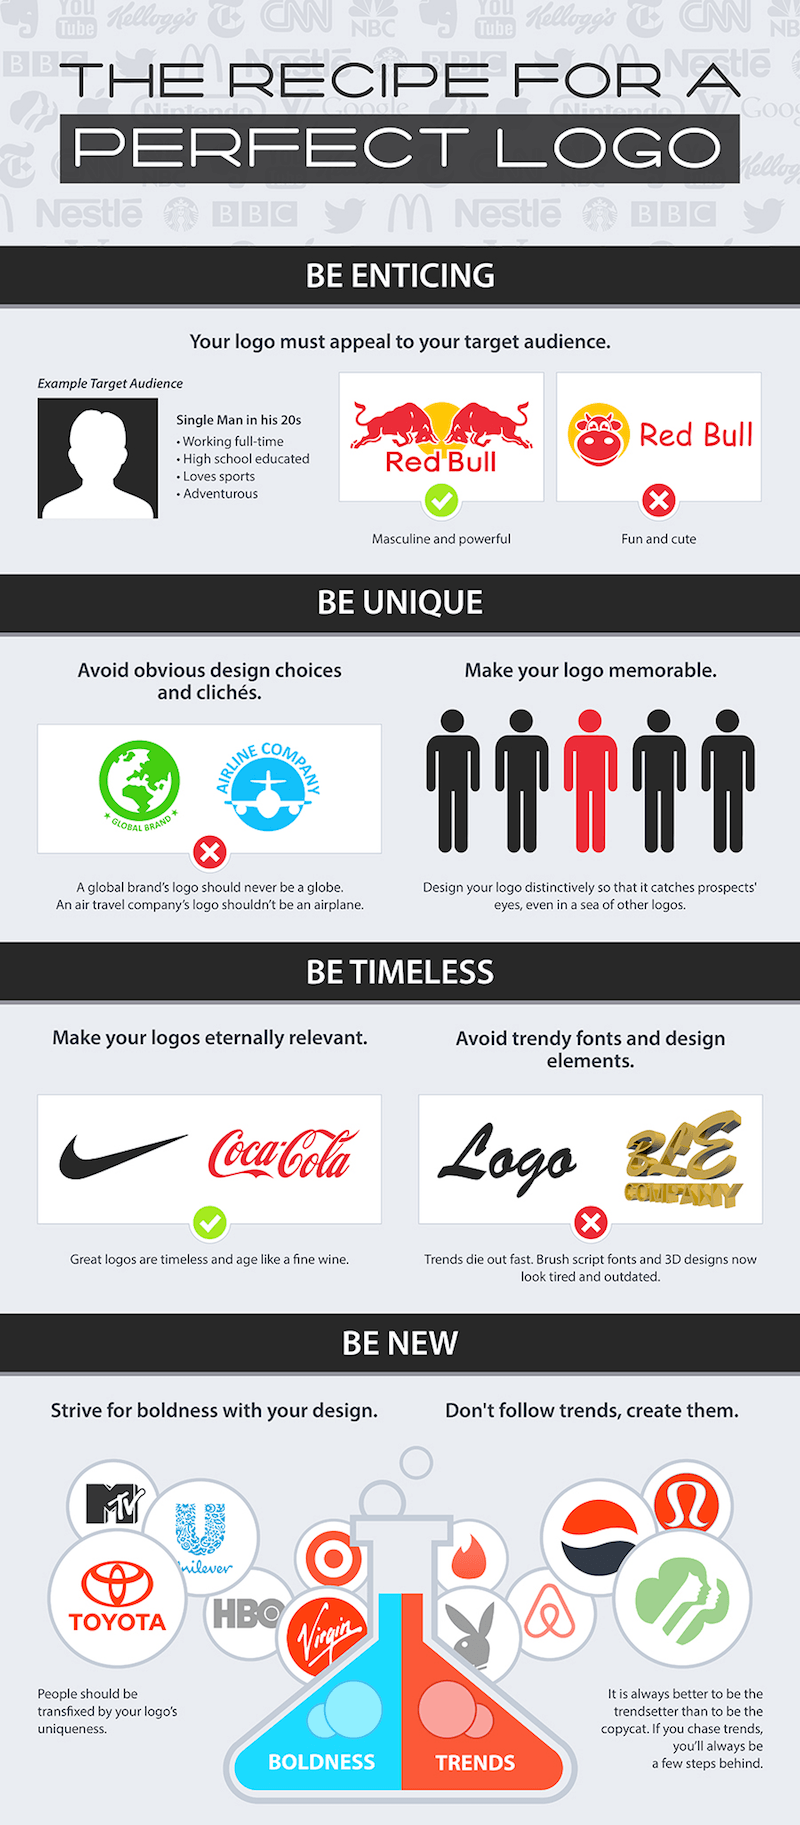 7 qualities of a great logo